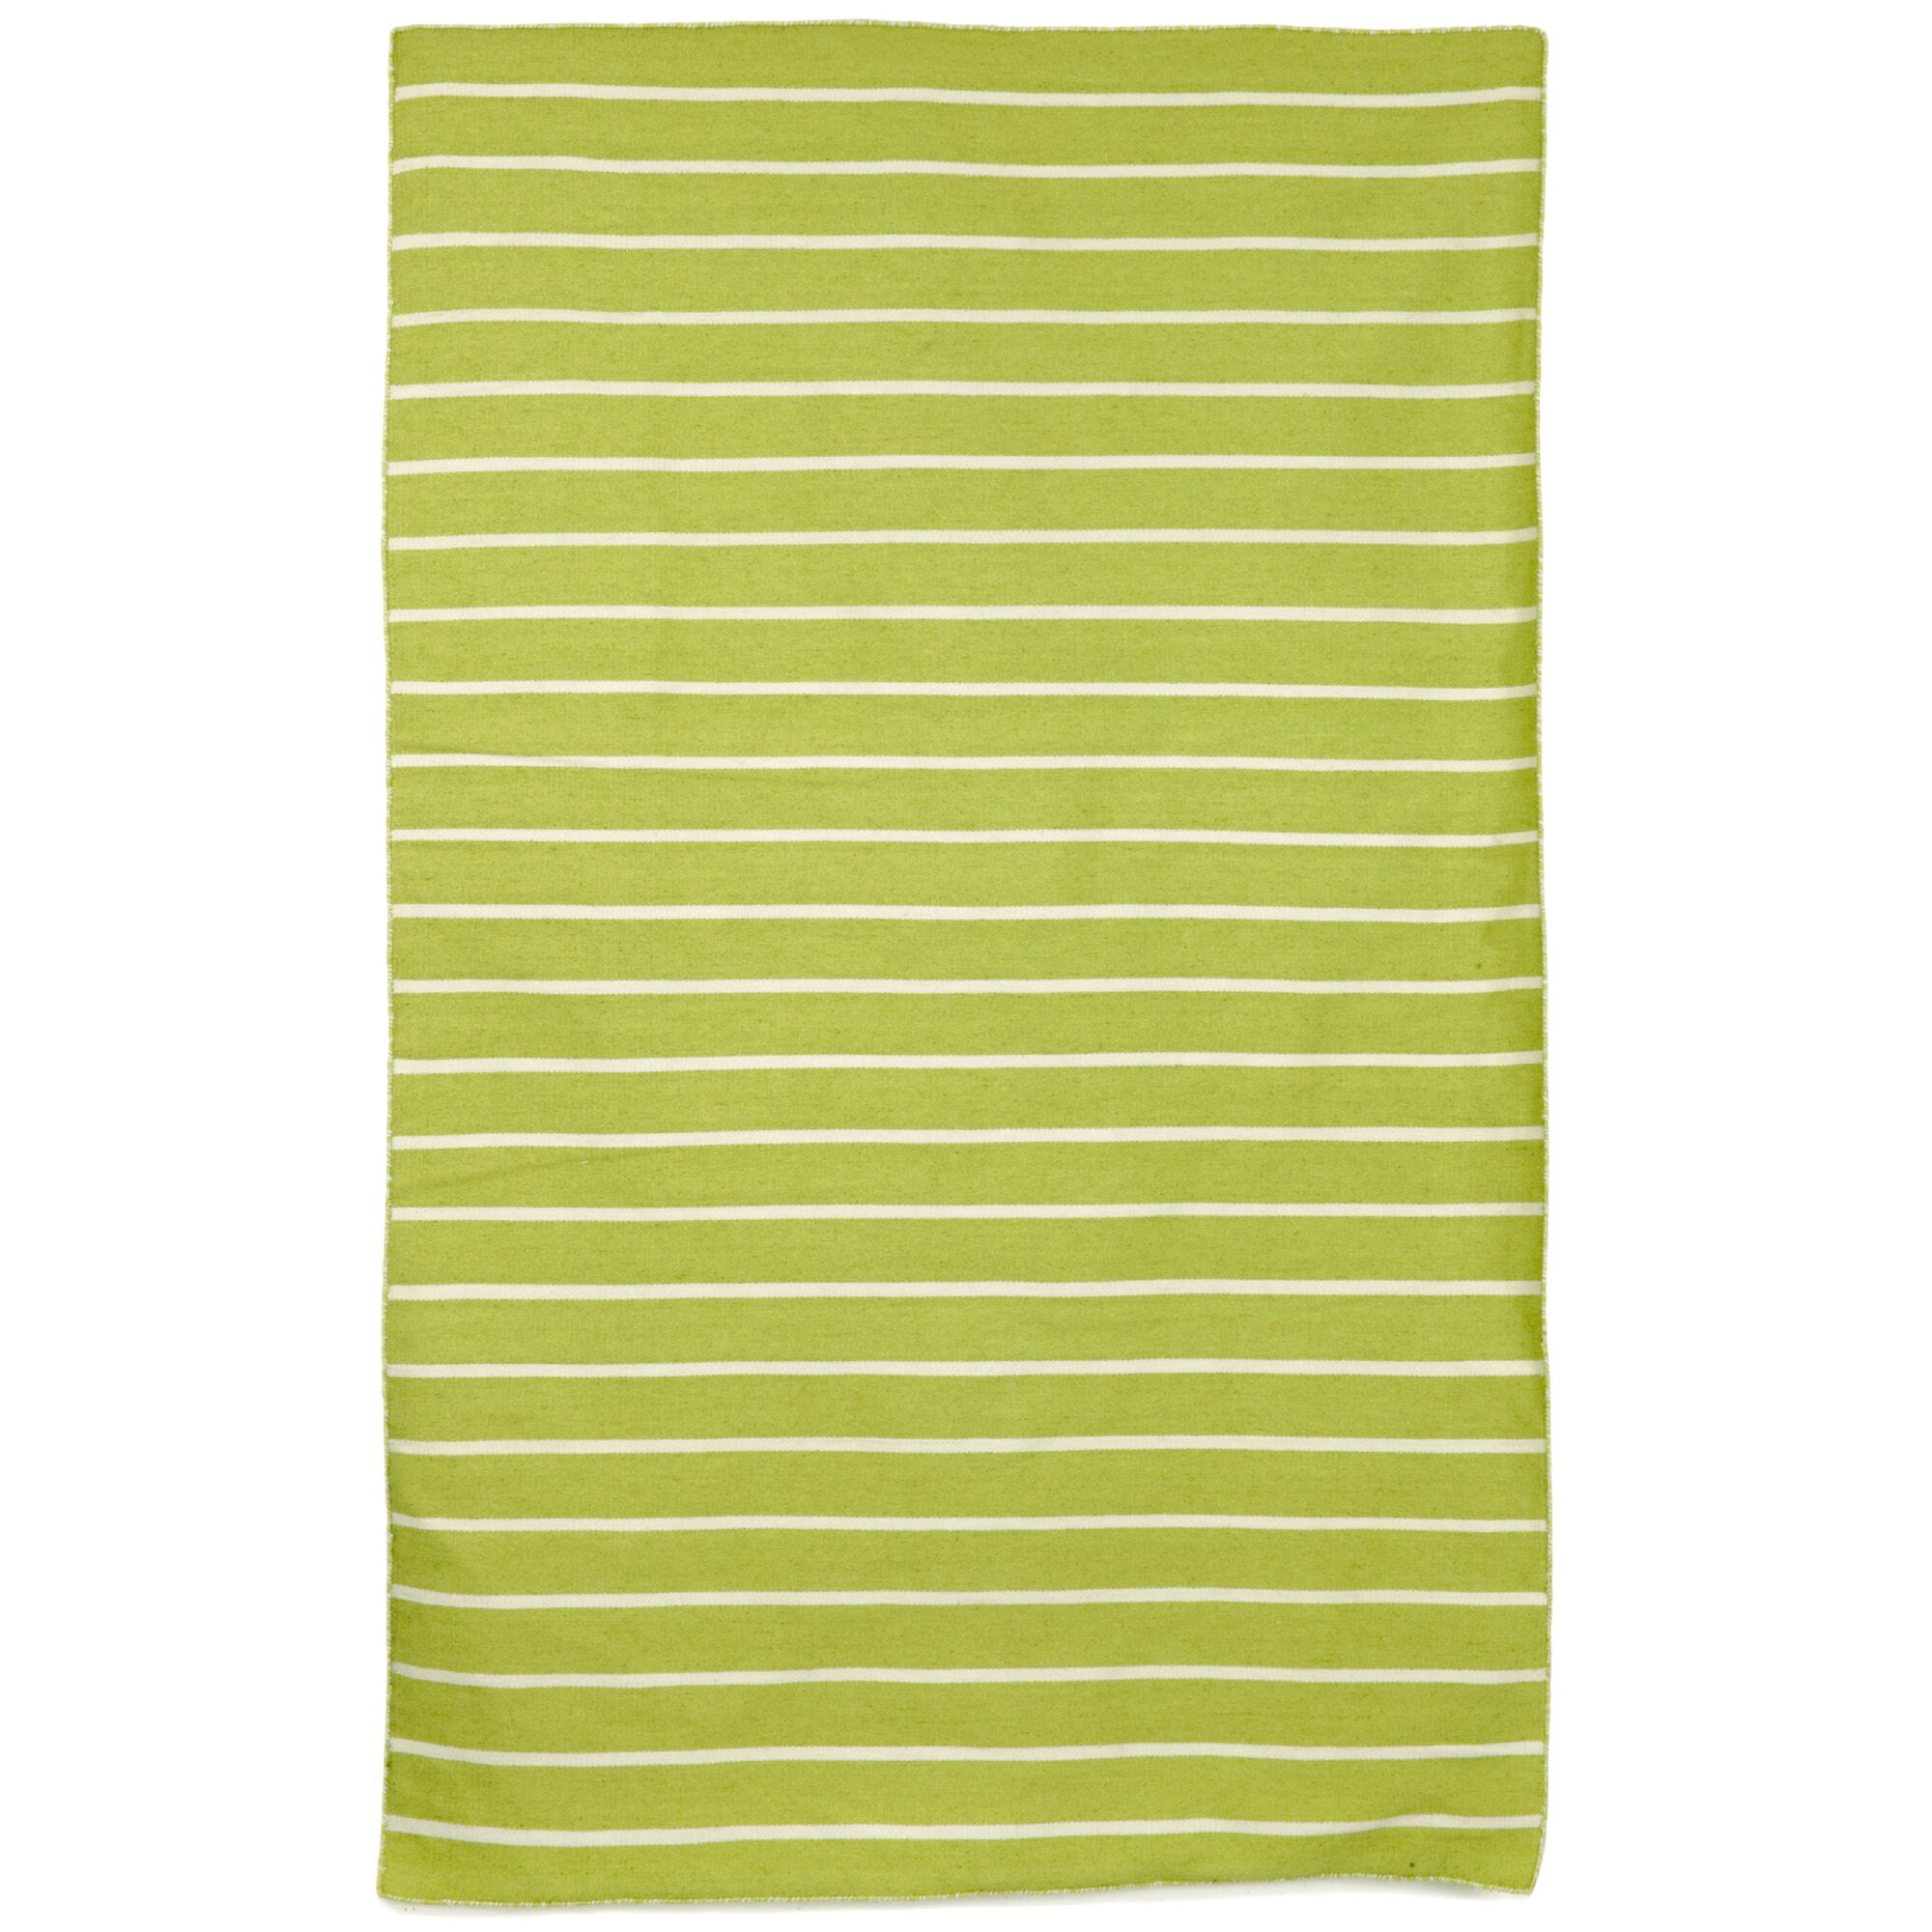 Ranier Hand-Woven Lime/Green/Ivory Indoor/Outdoor Area Rug Rug Size: Rectangle 8'3